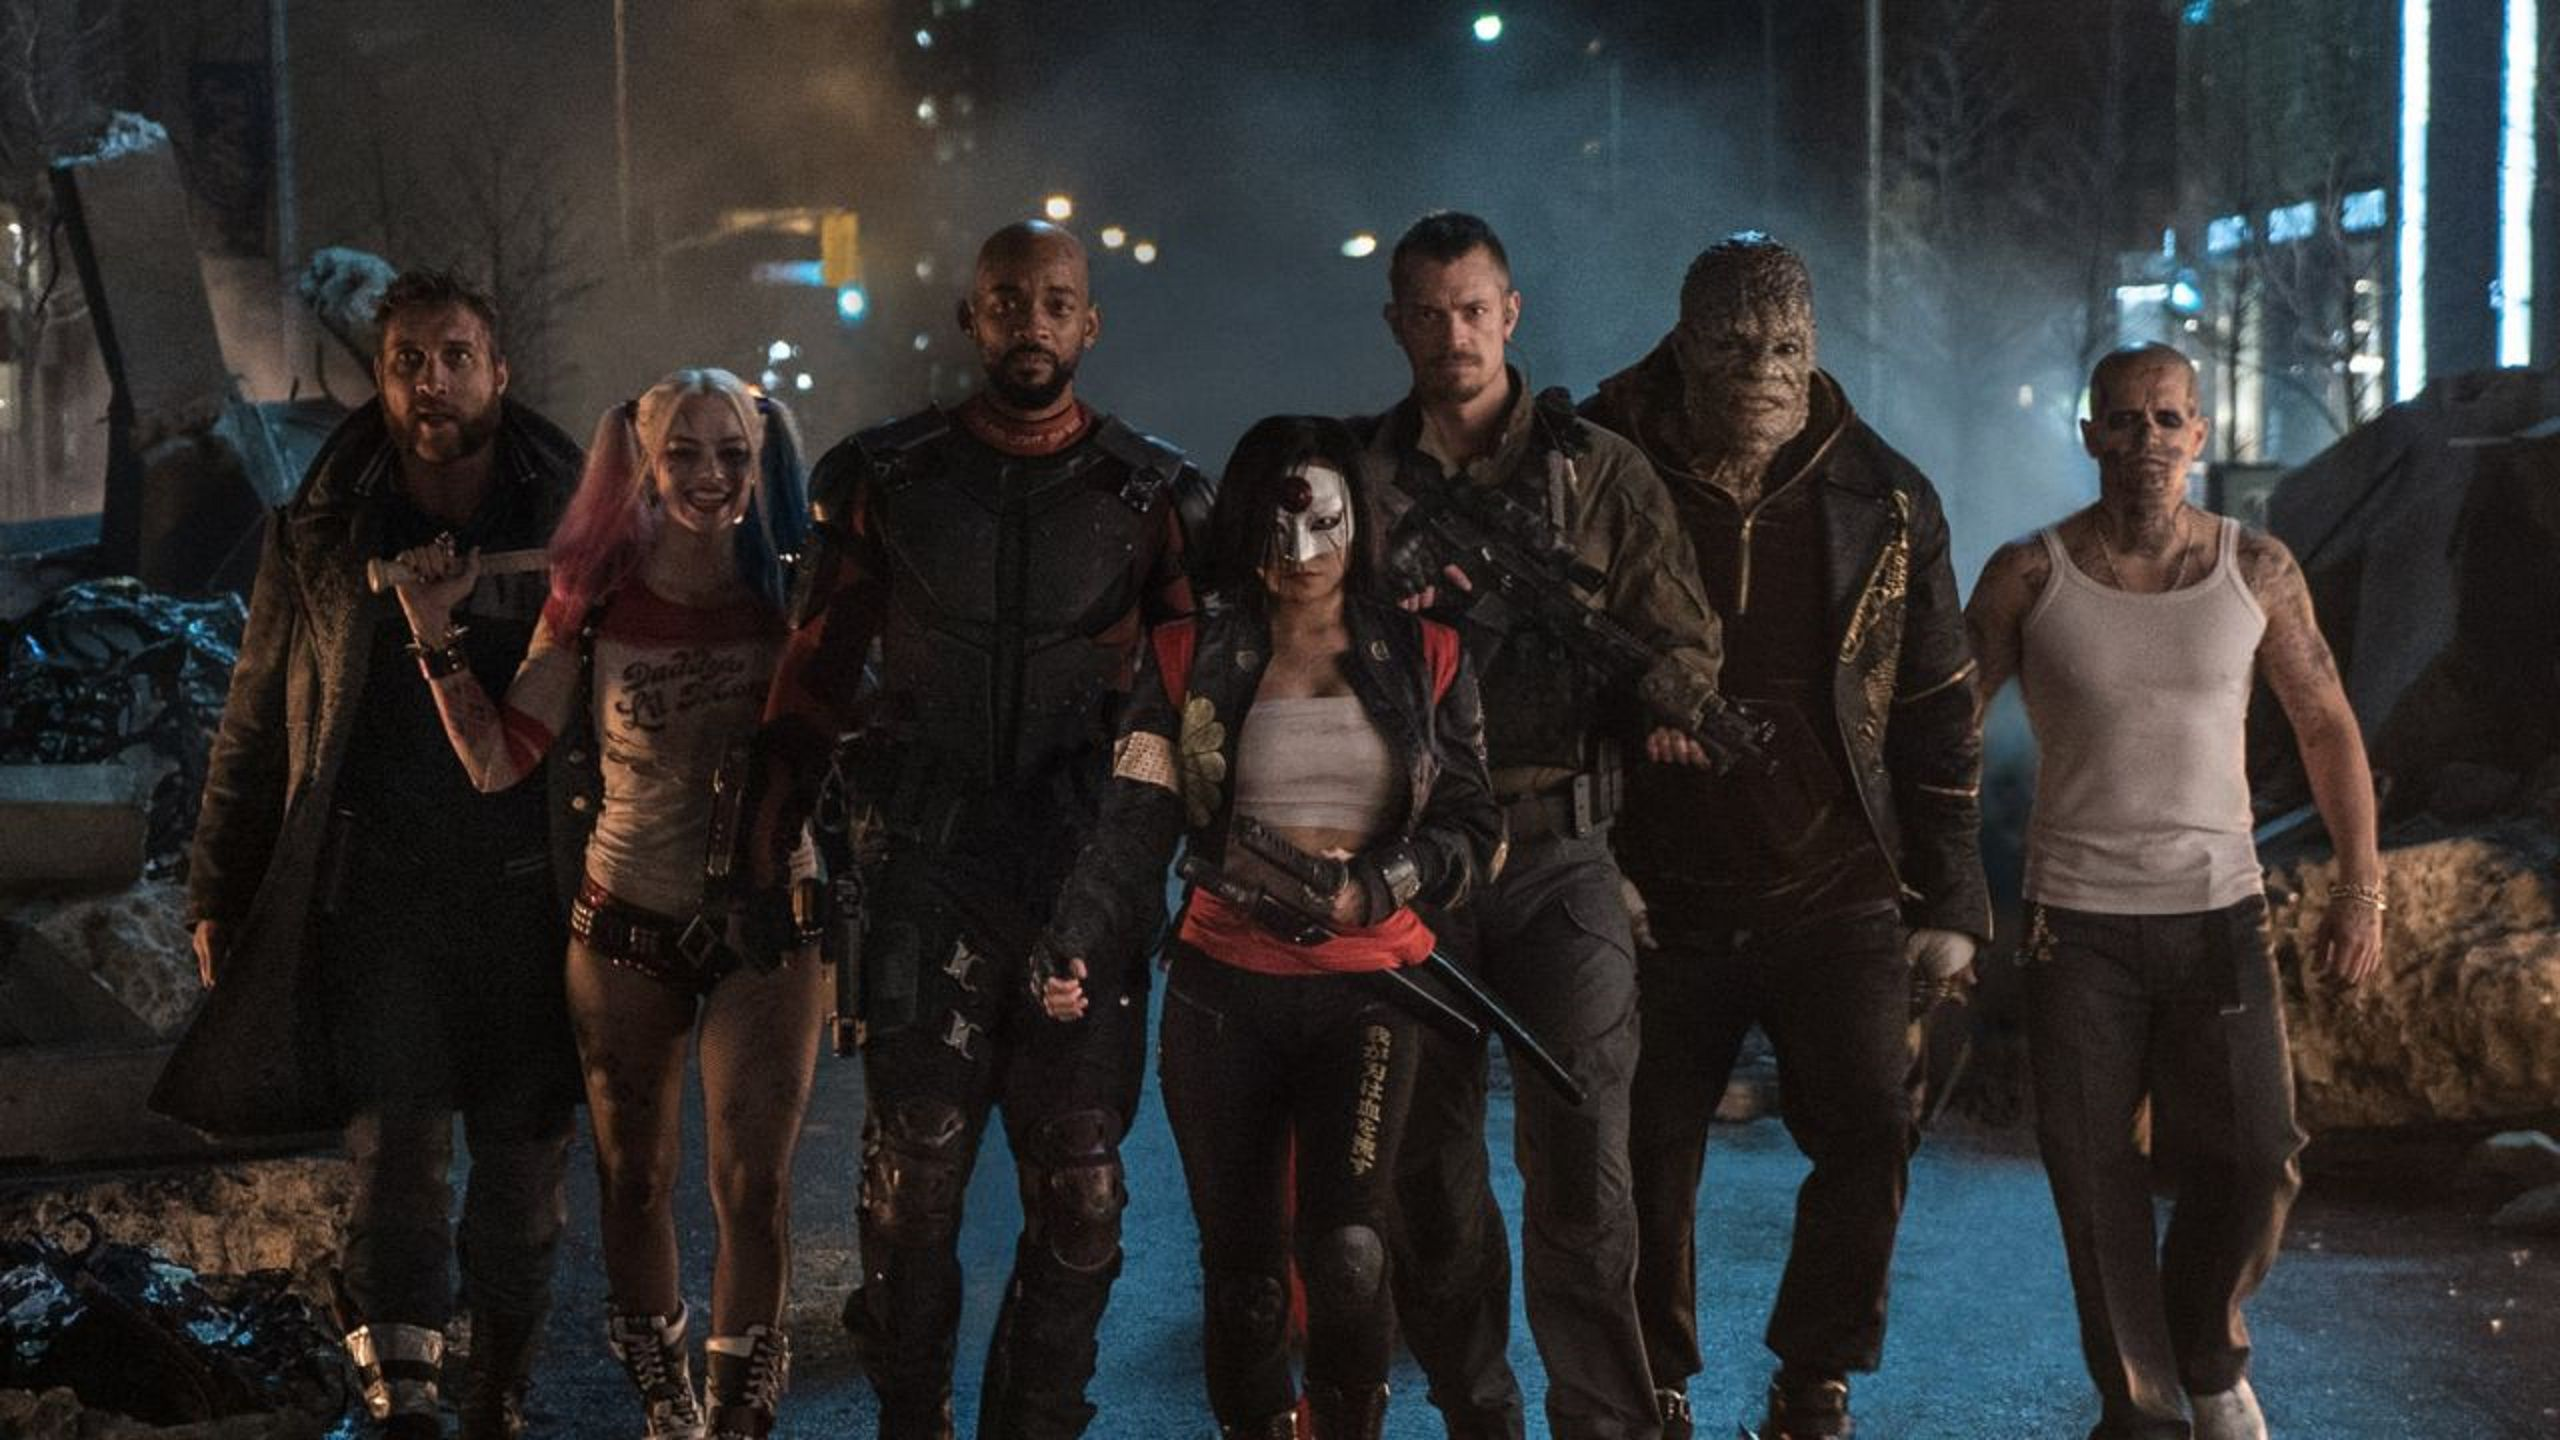 Suicide Squad - Will Smith, Jared Leto, Margot Robbie, Joel Kinman, Viola Davis